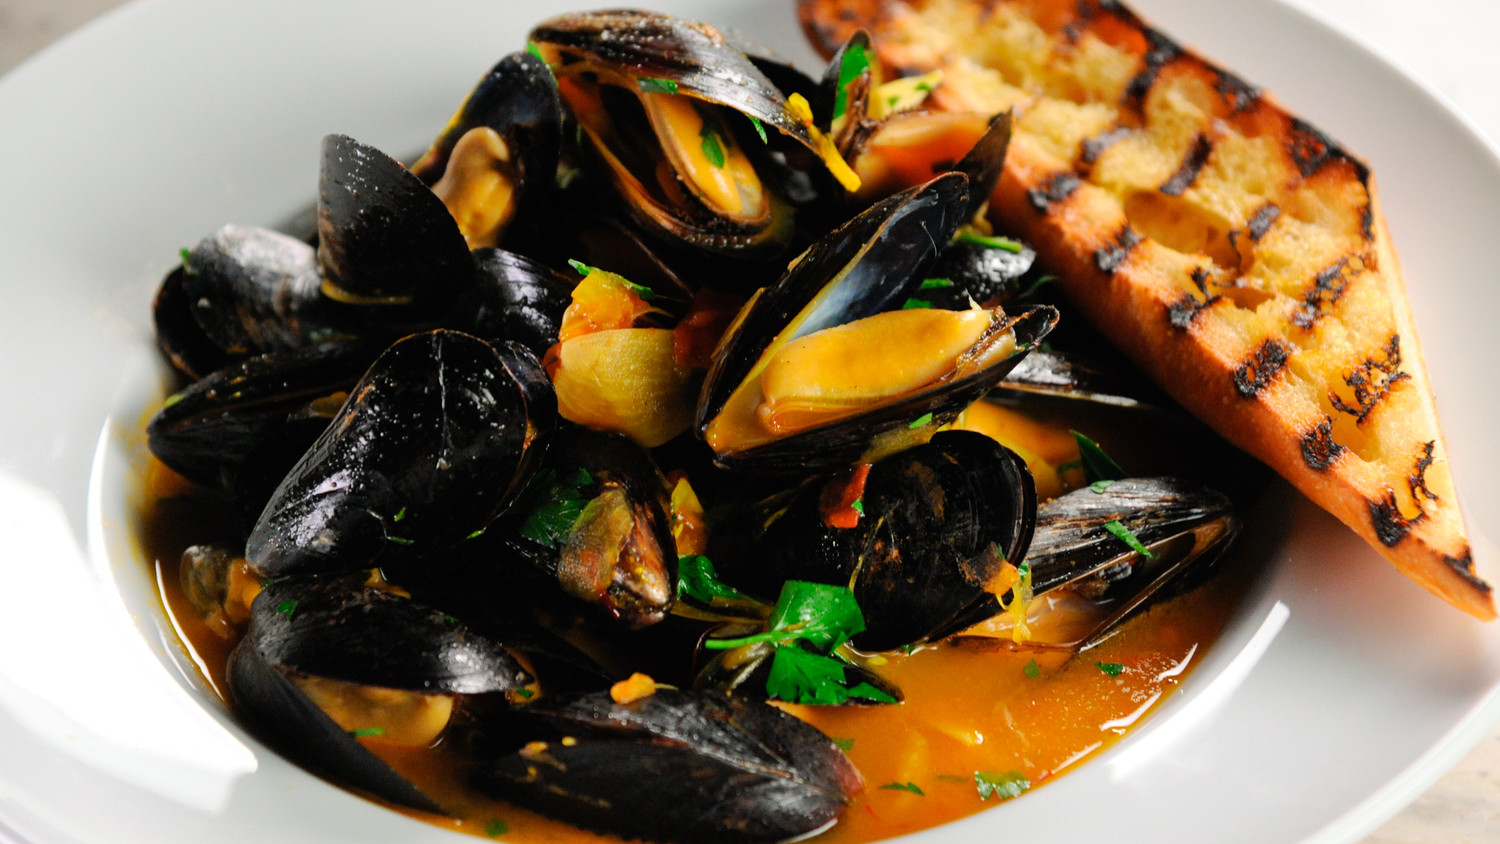 Gordon Ramsay, Steamed Mussels, Saffron Flatbread, recipe, lunch, video, minutes, healthy